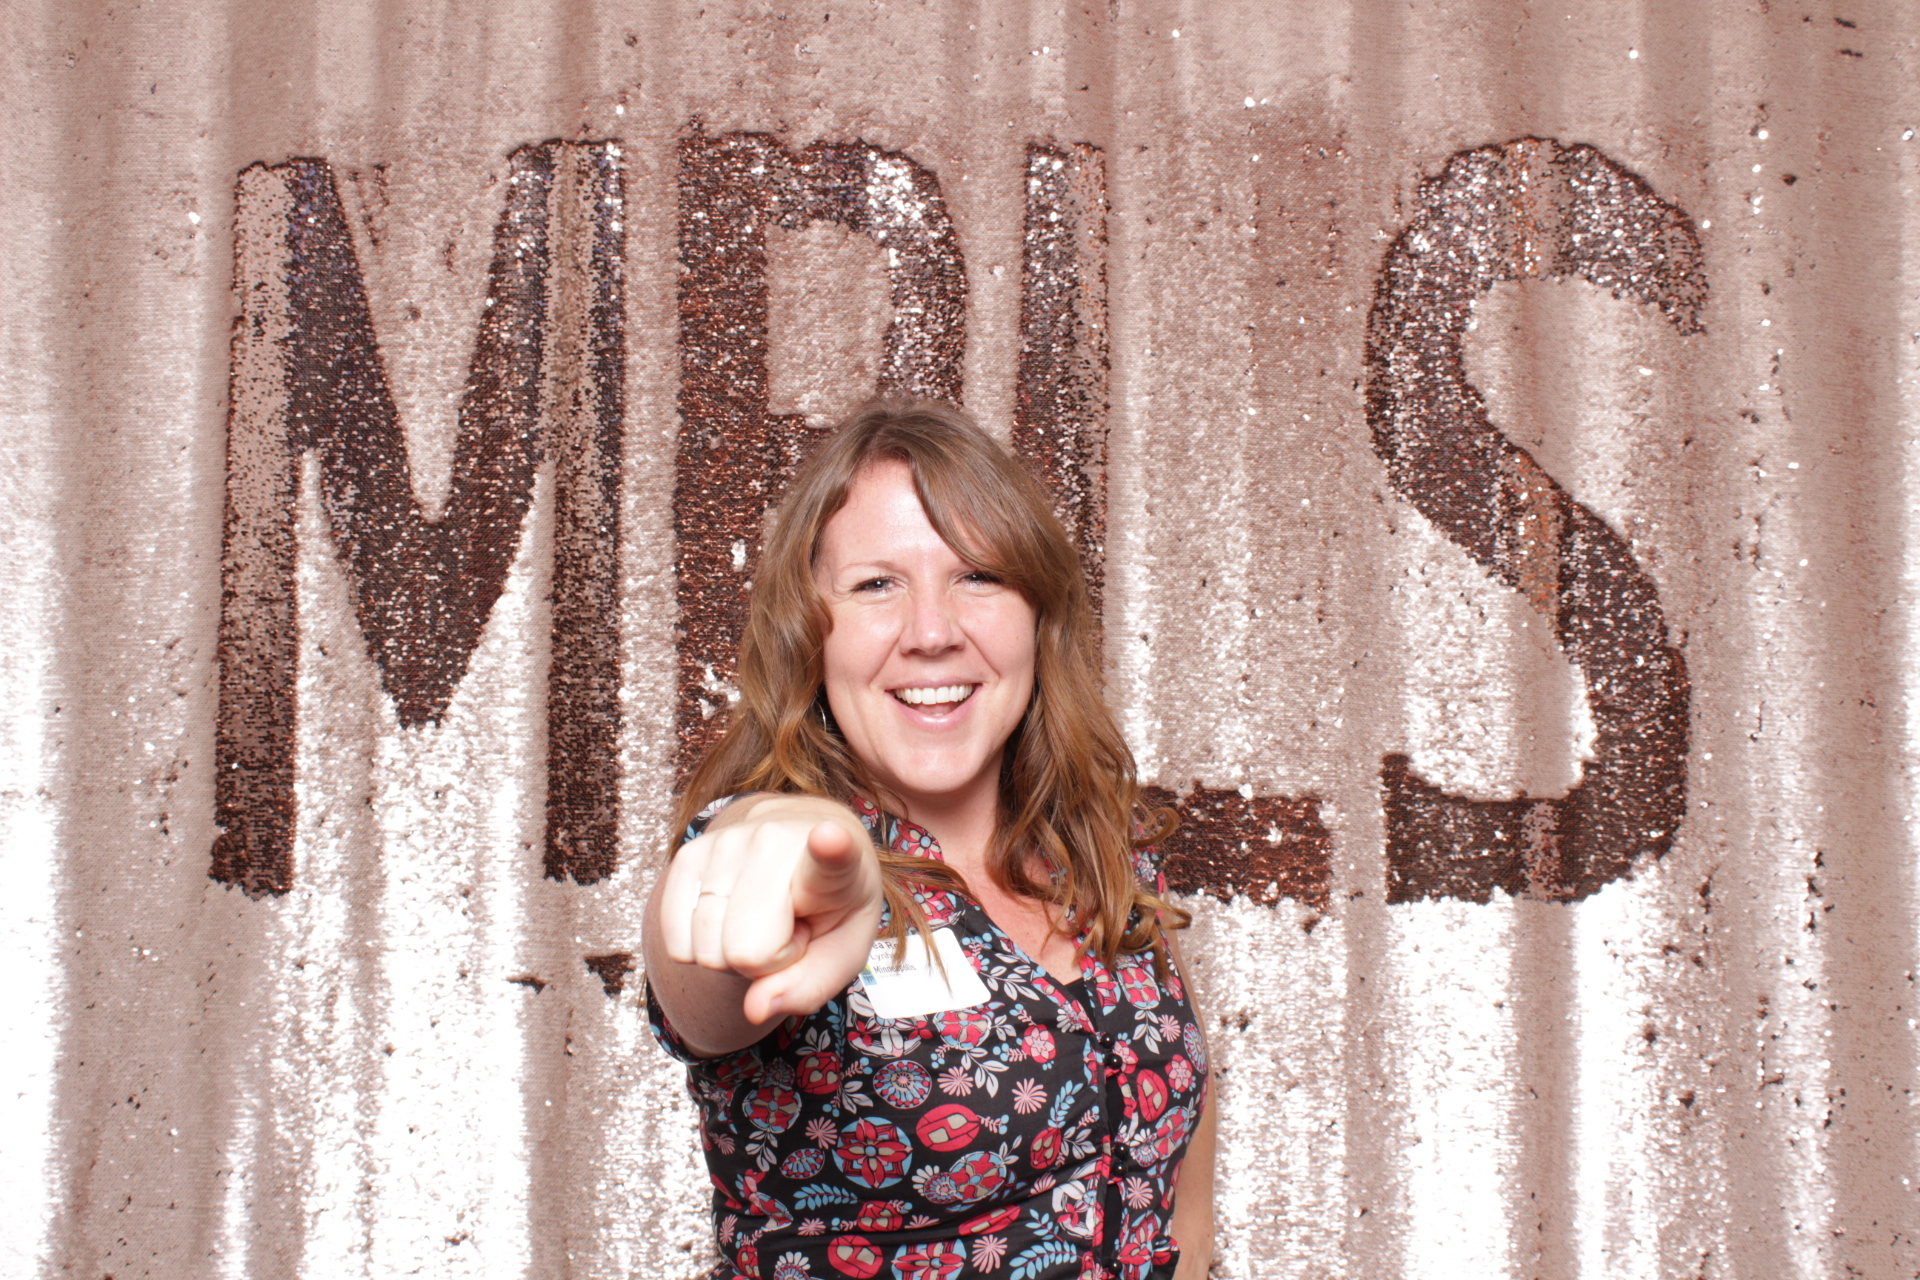 Minneapolis_corporate_photo_booth_rentals (1).jpg